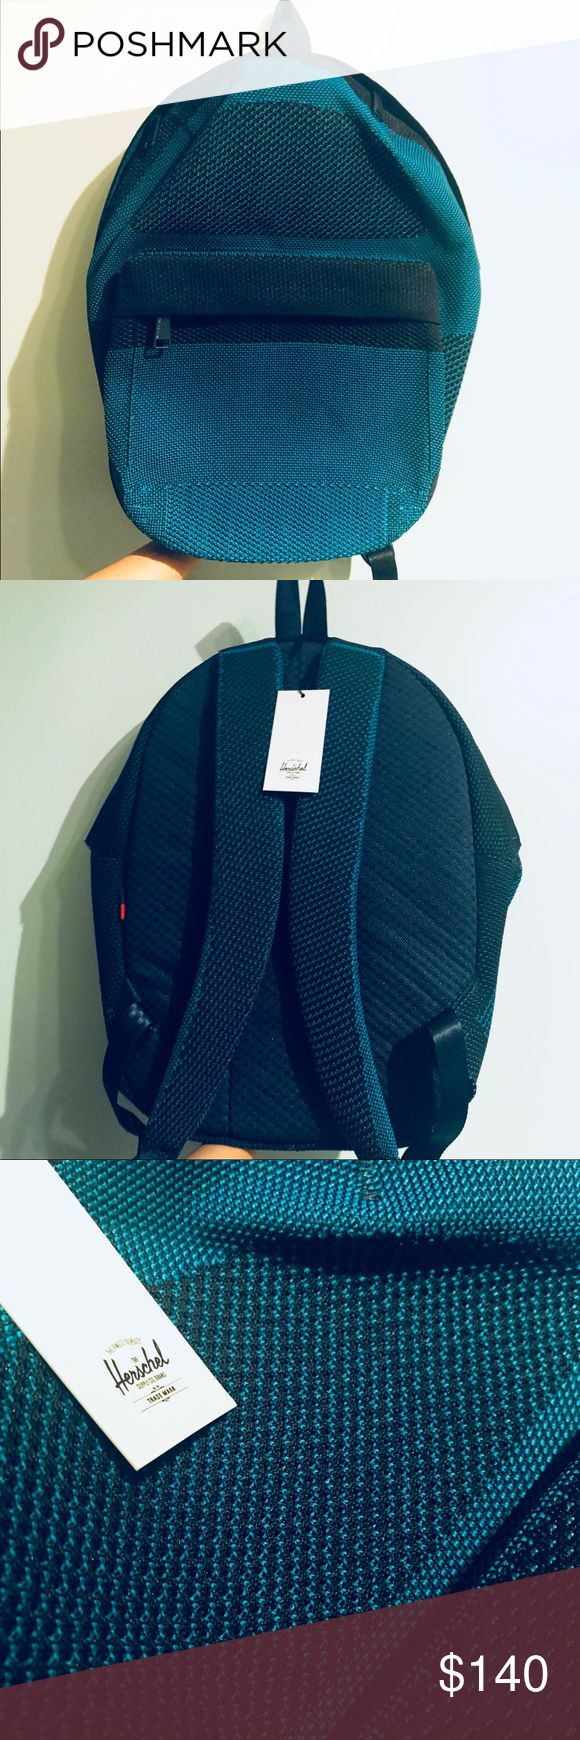 "Herschel Apex Lawson Backpack - Blue Trendy Hershel backpack with mesh knit material, padded back support, and neoprene laptop sleeve. Brand New with tags. Original MSRP $180  Color: Medieval Blue  Dimensions: 17.25""(H) x 11.75"" (W) x 5.5"" (D)   See link for additional details: https://herschel.com/shop/backpacks/apex-lawson?v=10276-01500-OS Herschel Supply Company Bags Backpacks"